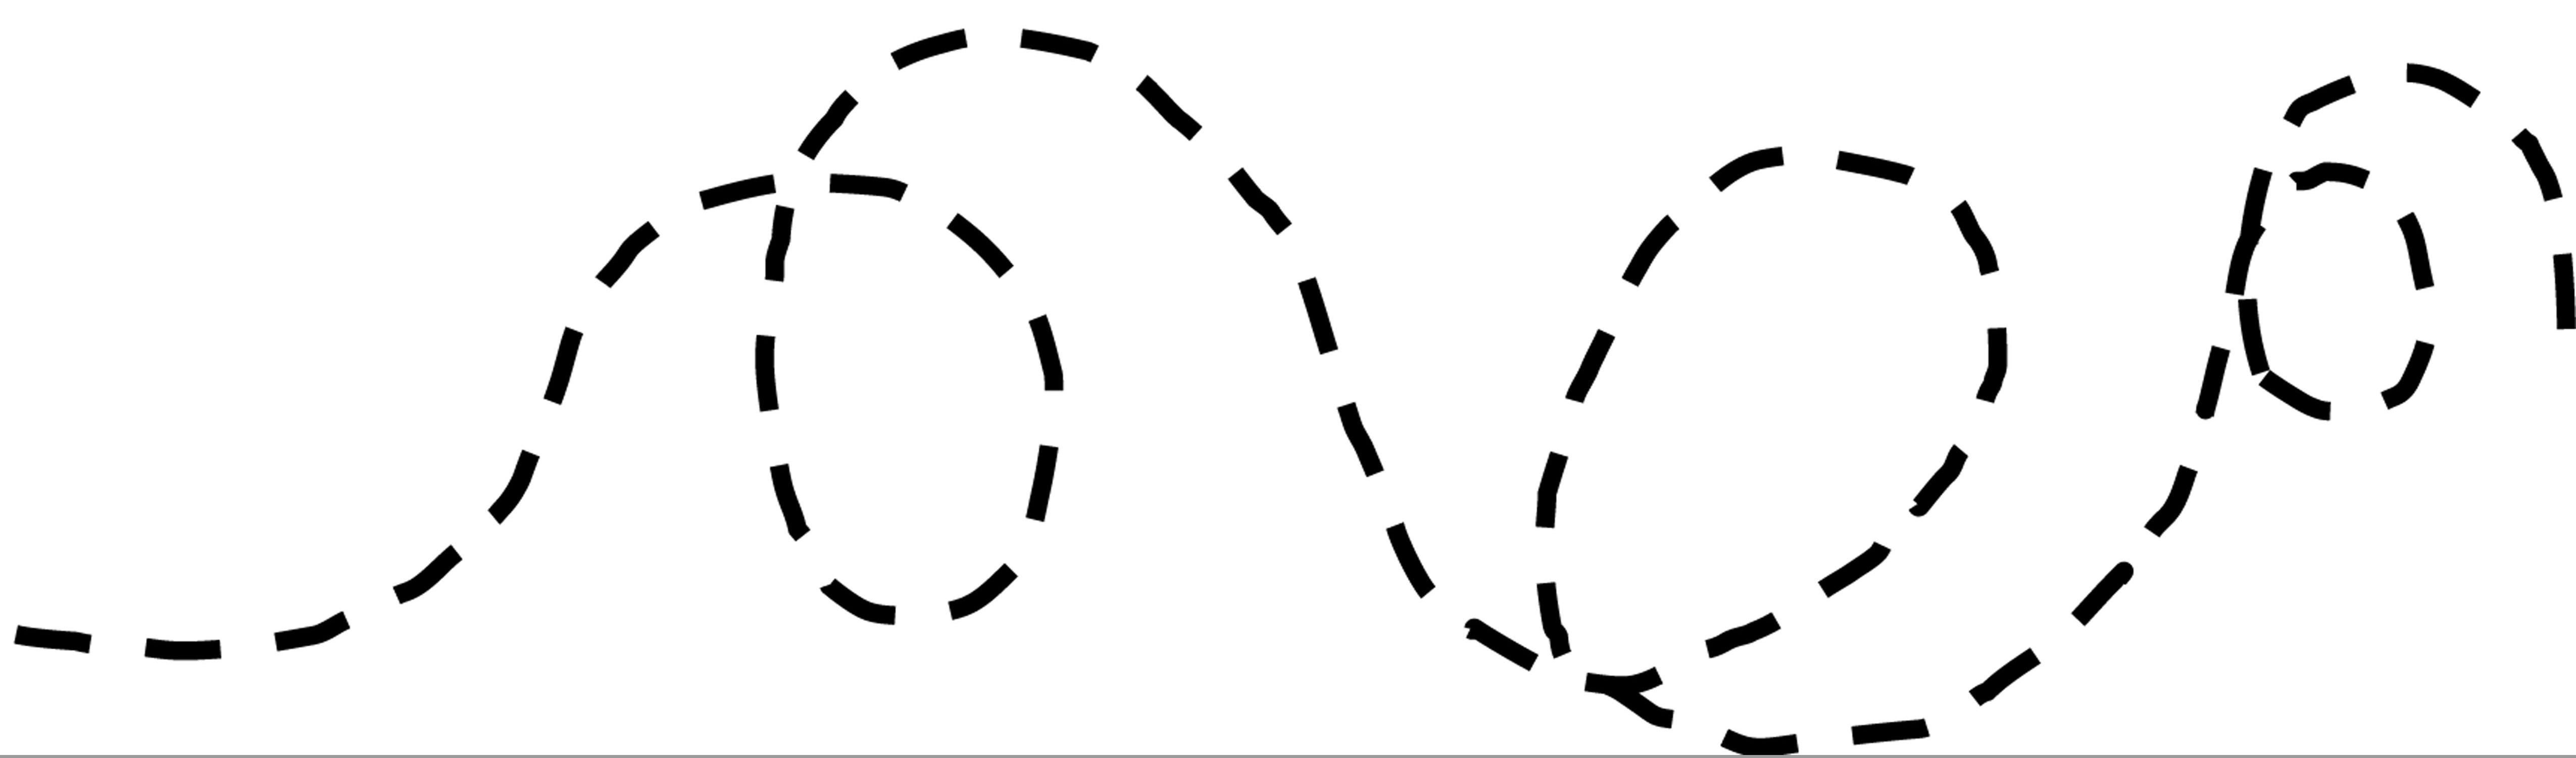 Clipart dotted line.